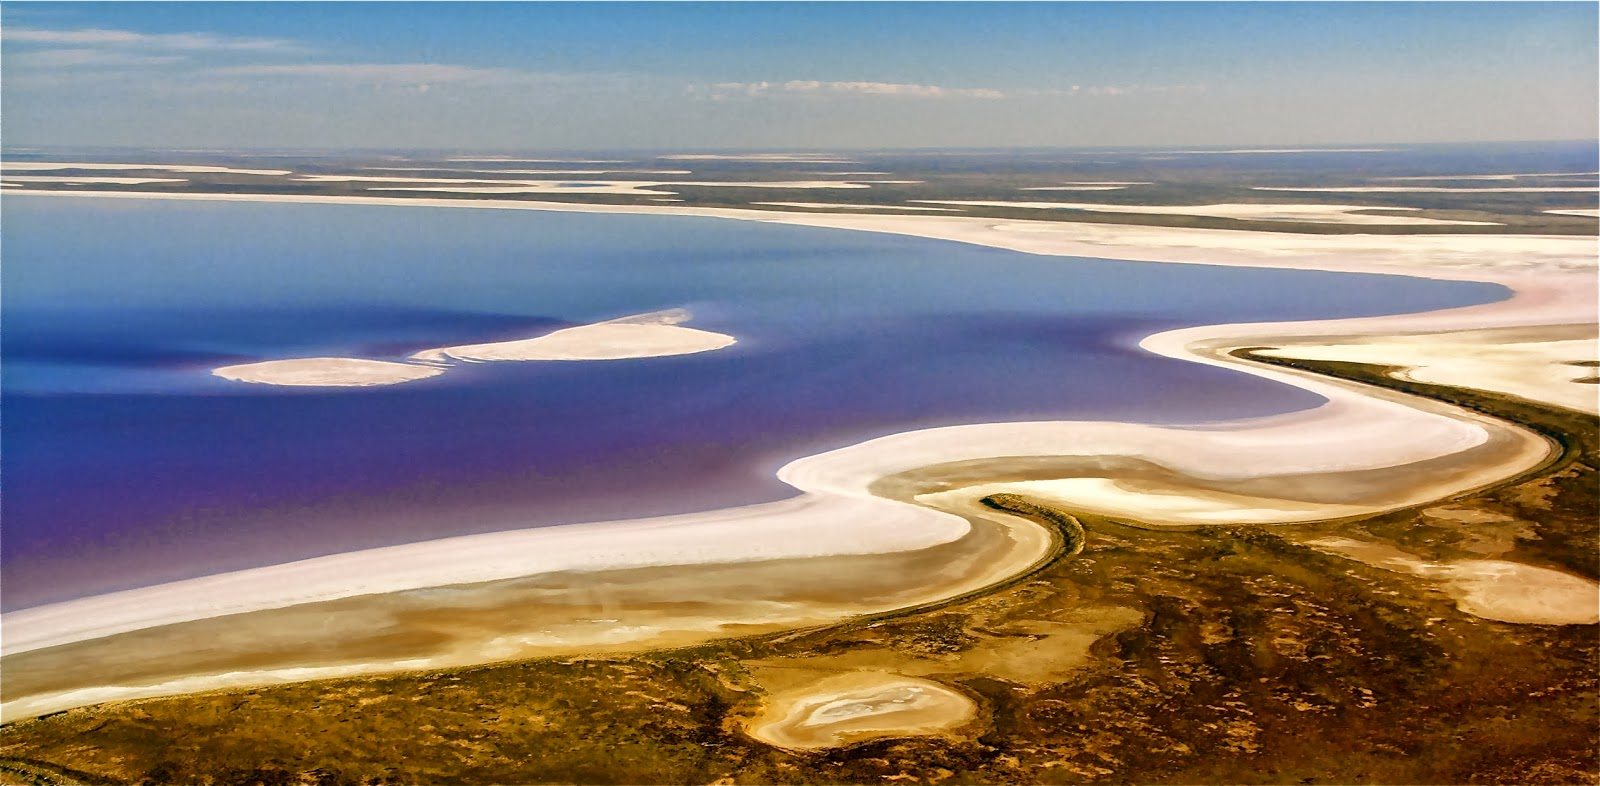 How To Get To Lake Eyre